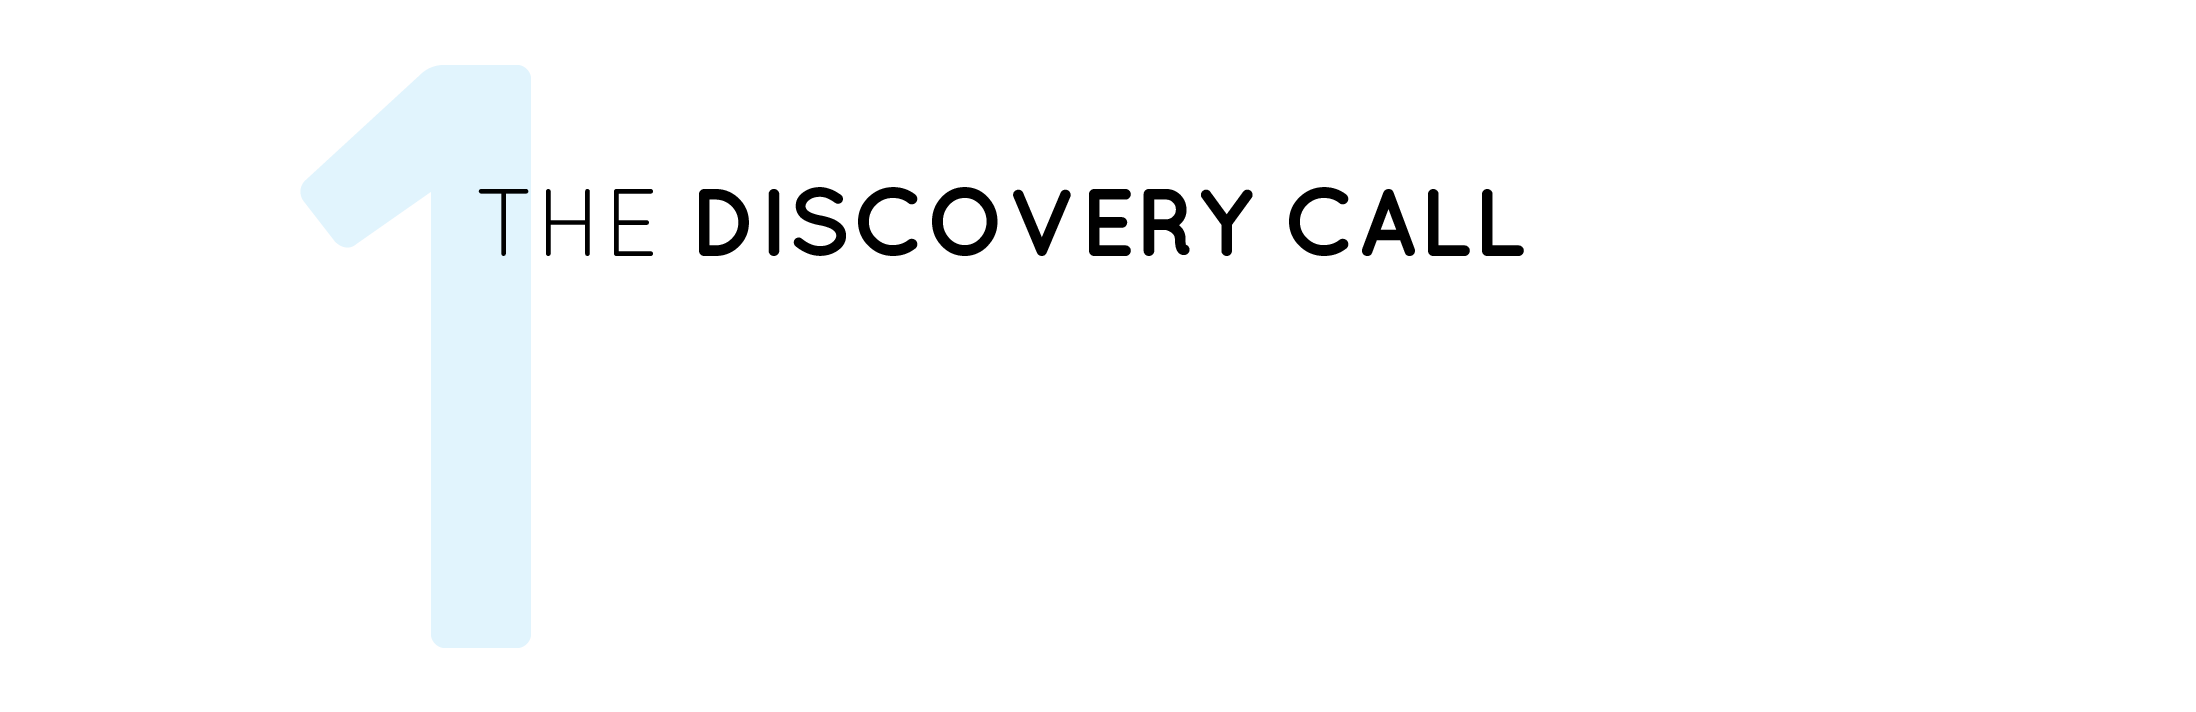 20 min. phone call - We'll discuss your needs and goals answering any questions you might have while I explain my process.